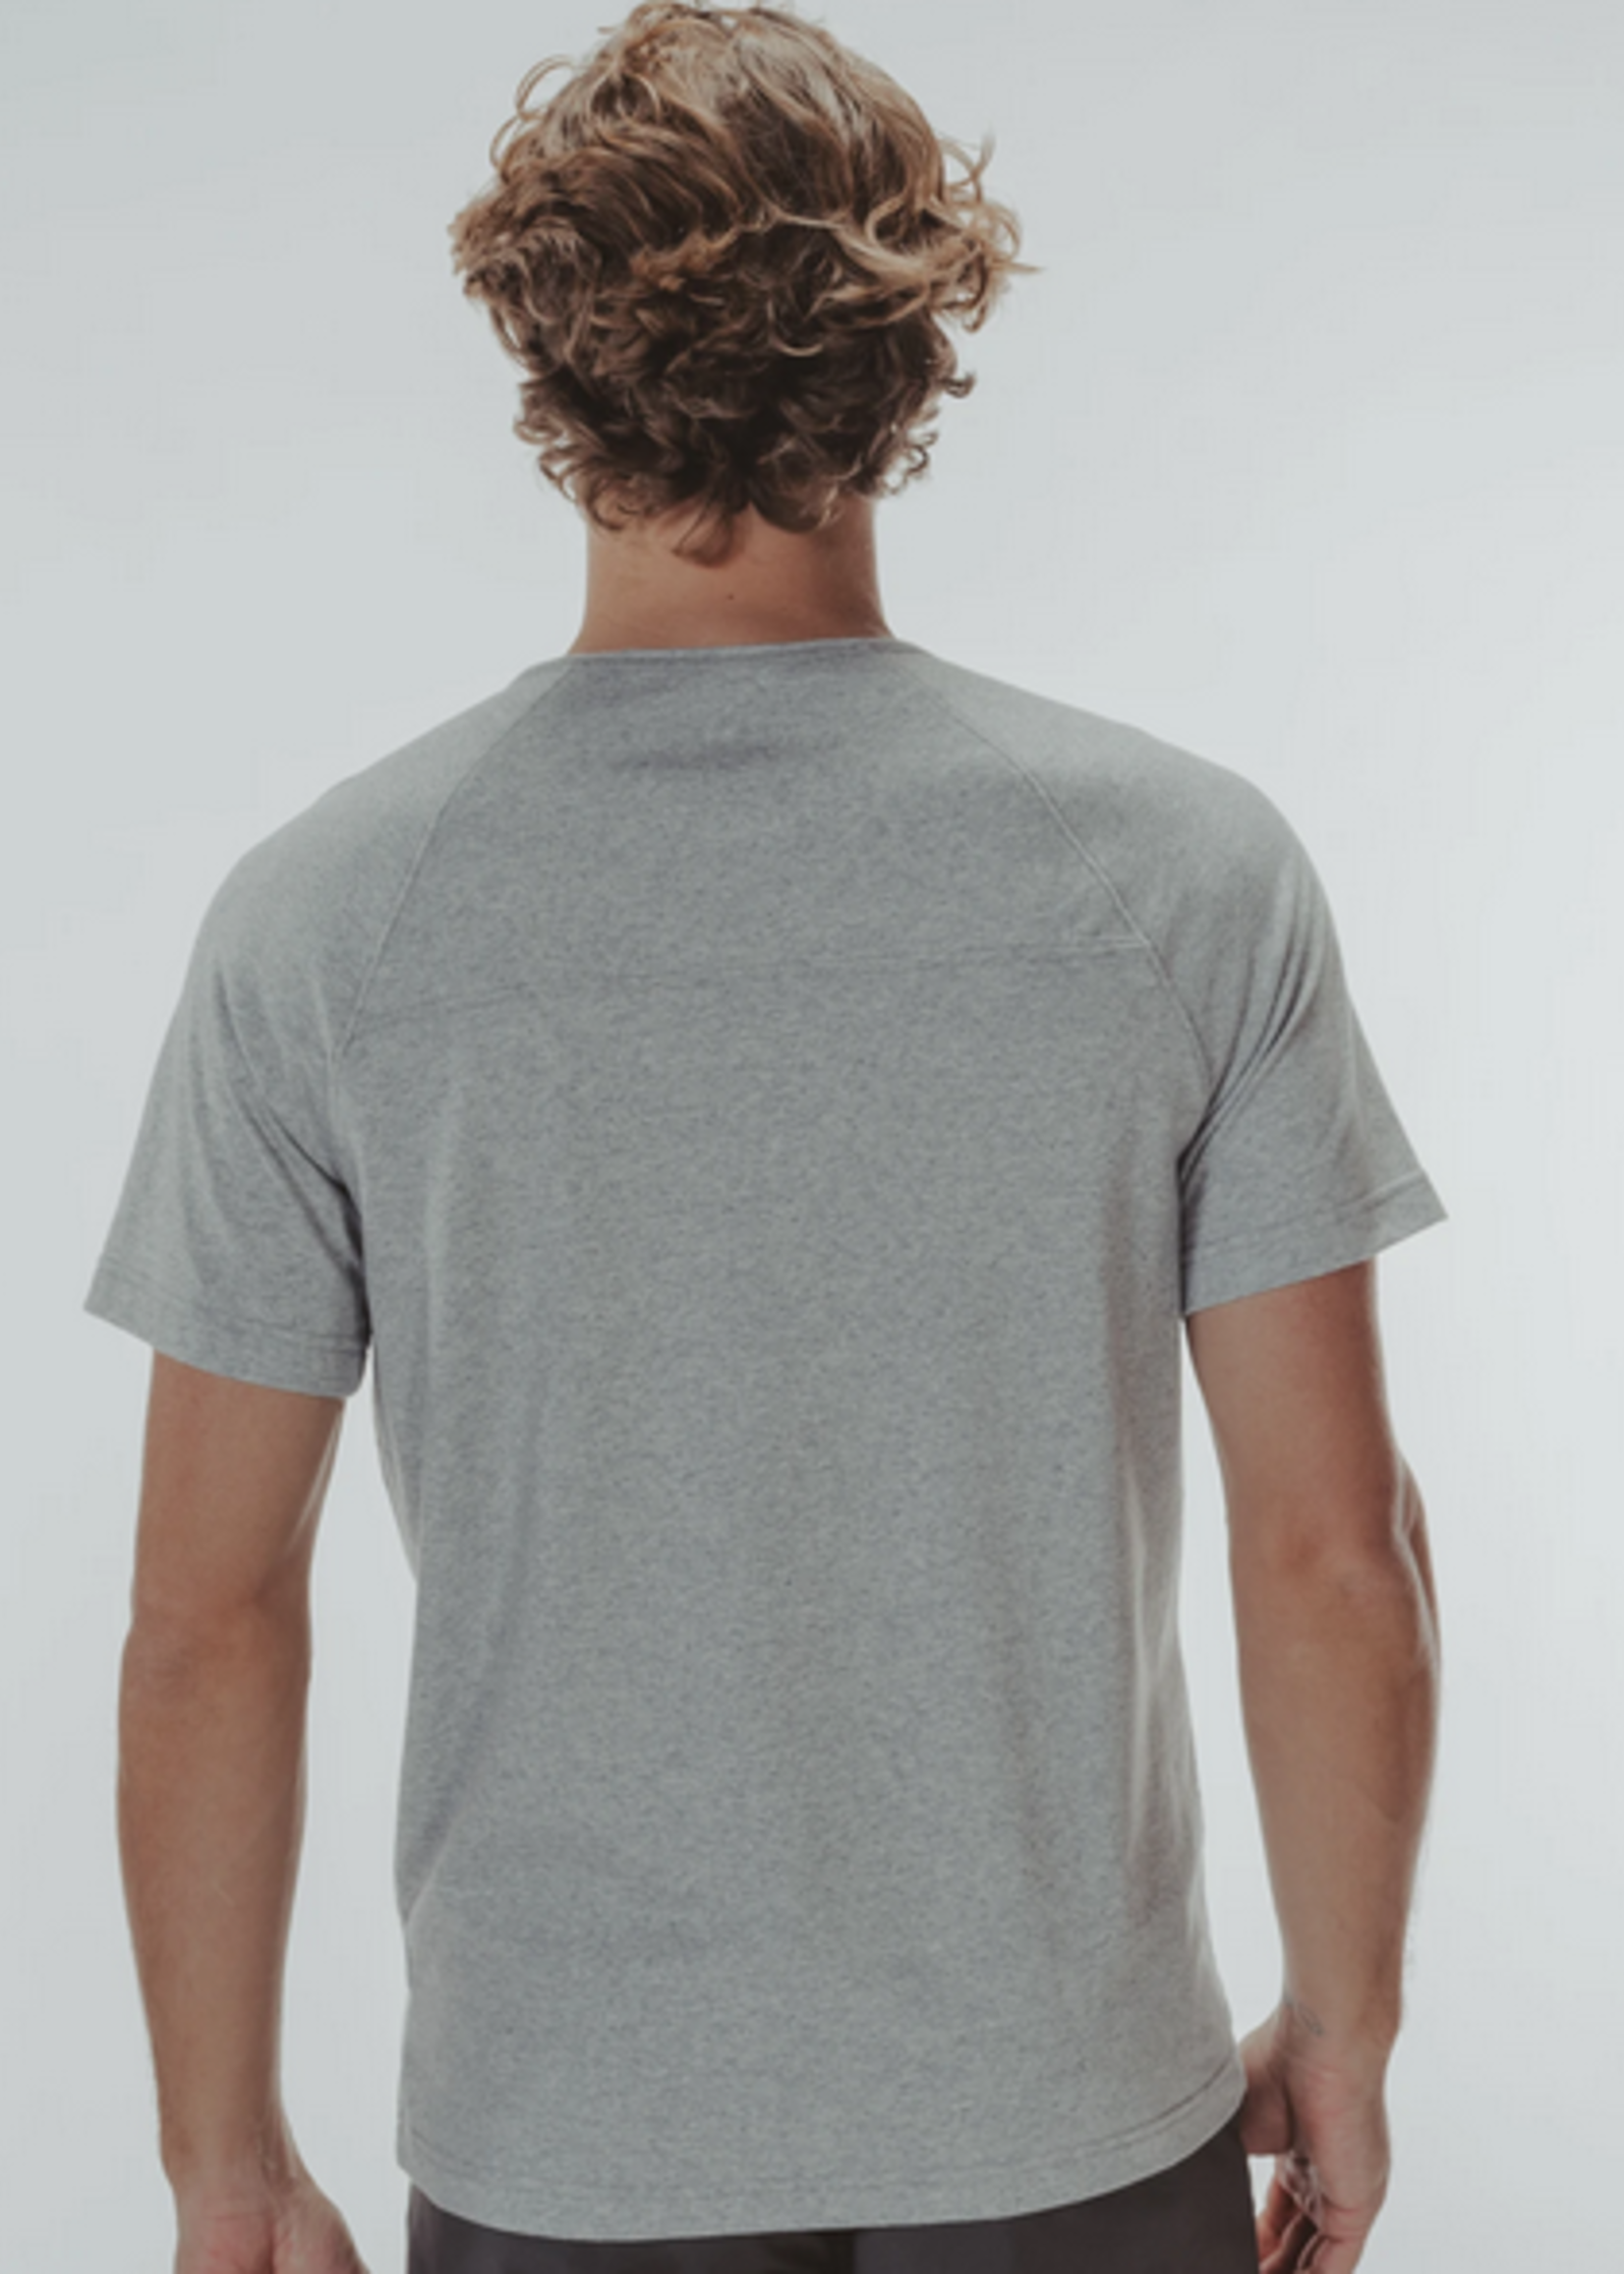 The Normal Brand Active Puremeso Henley